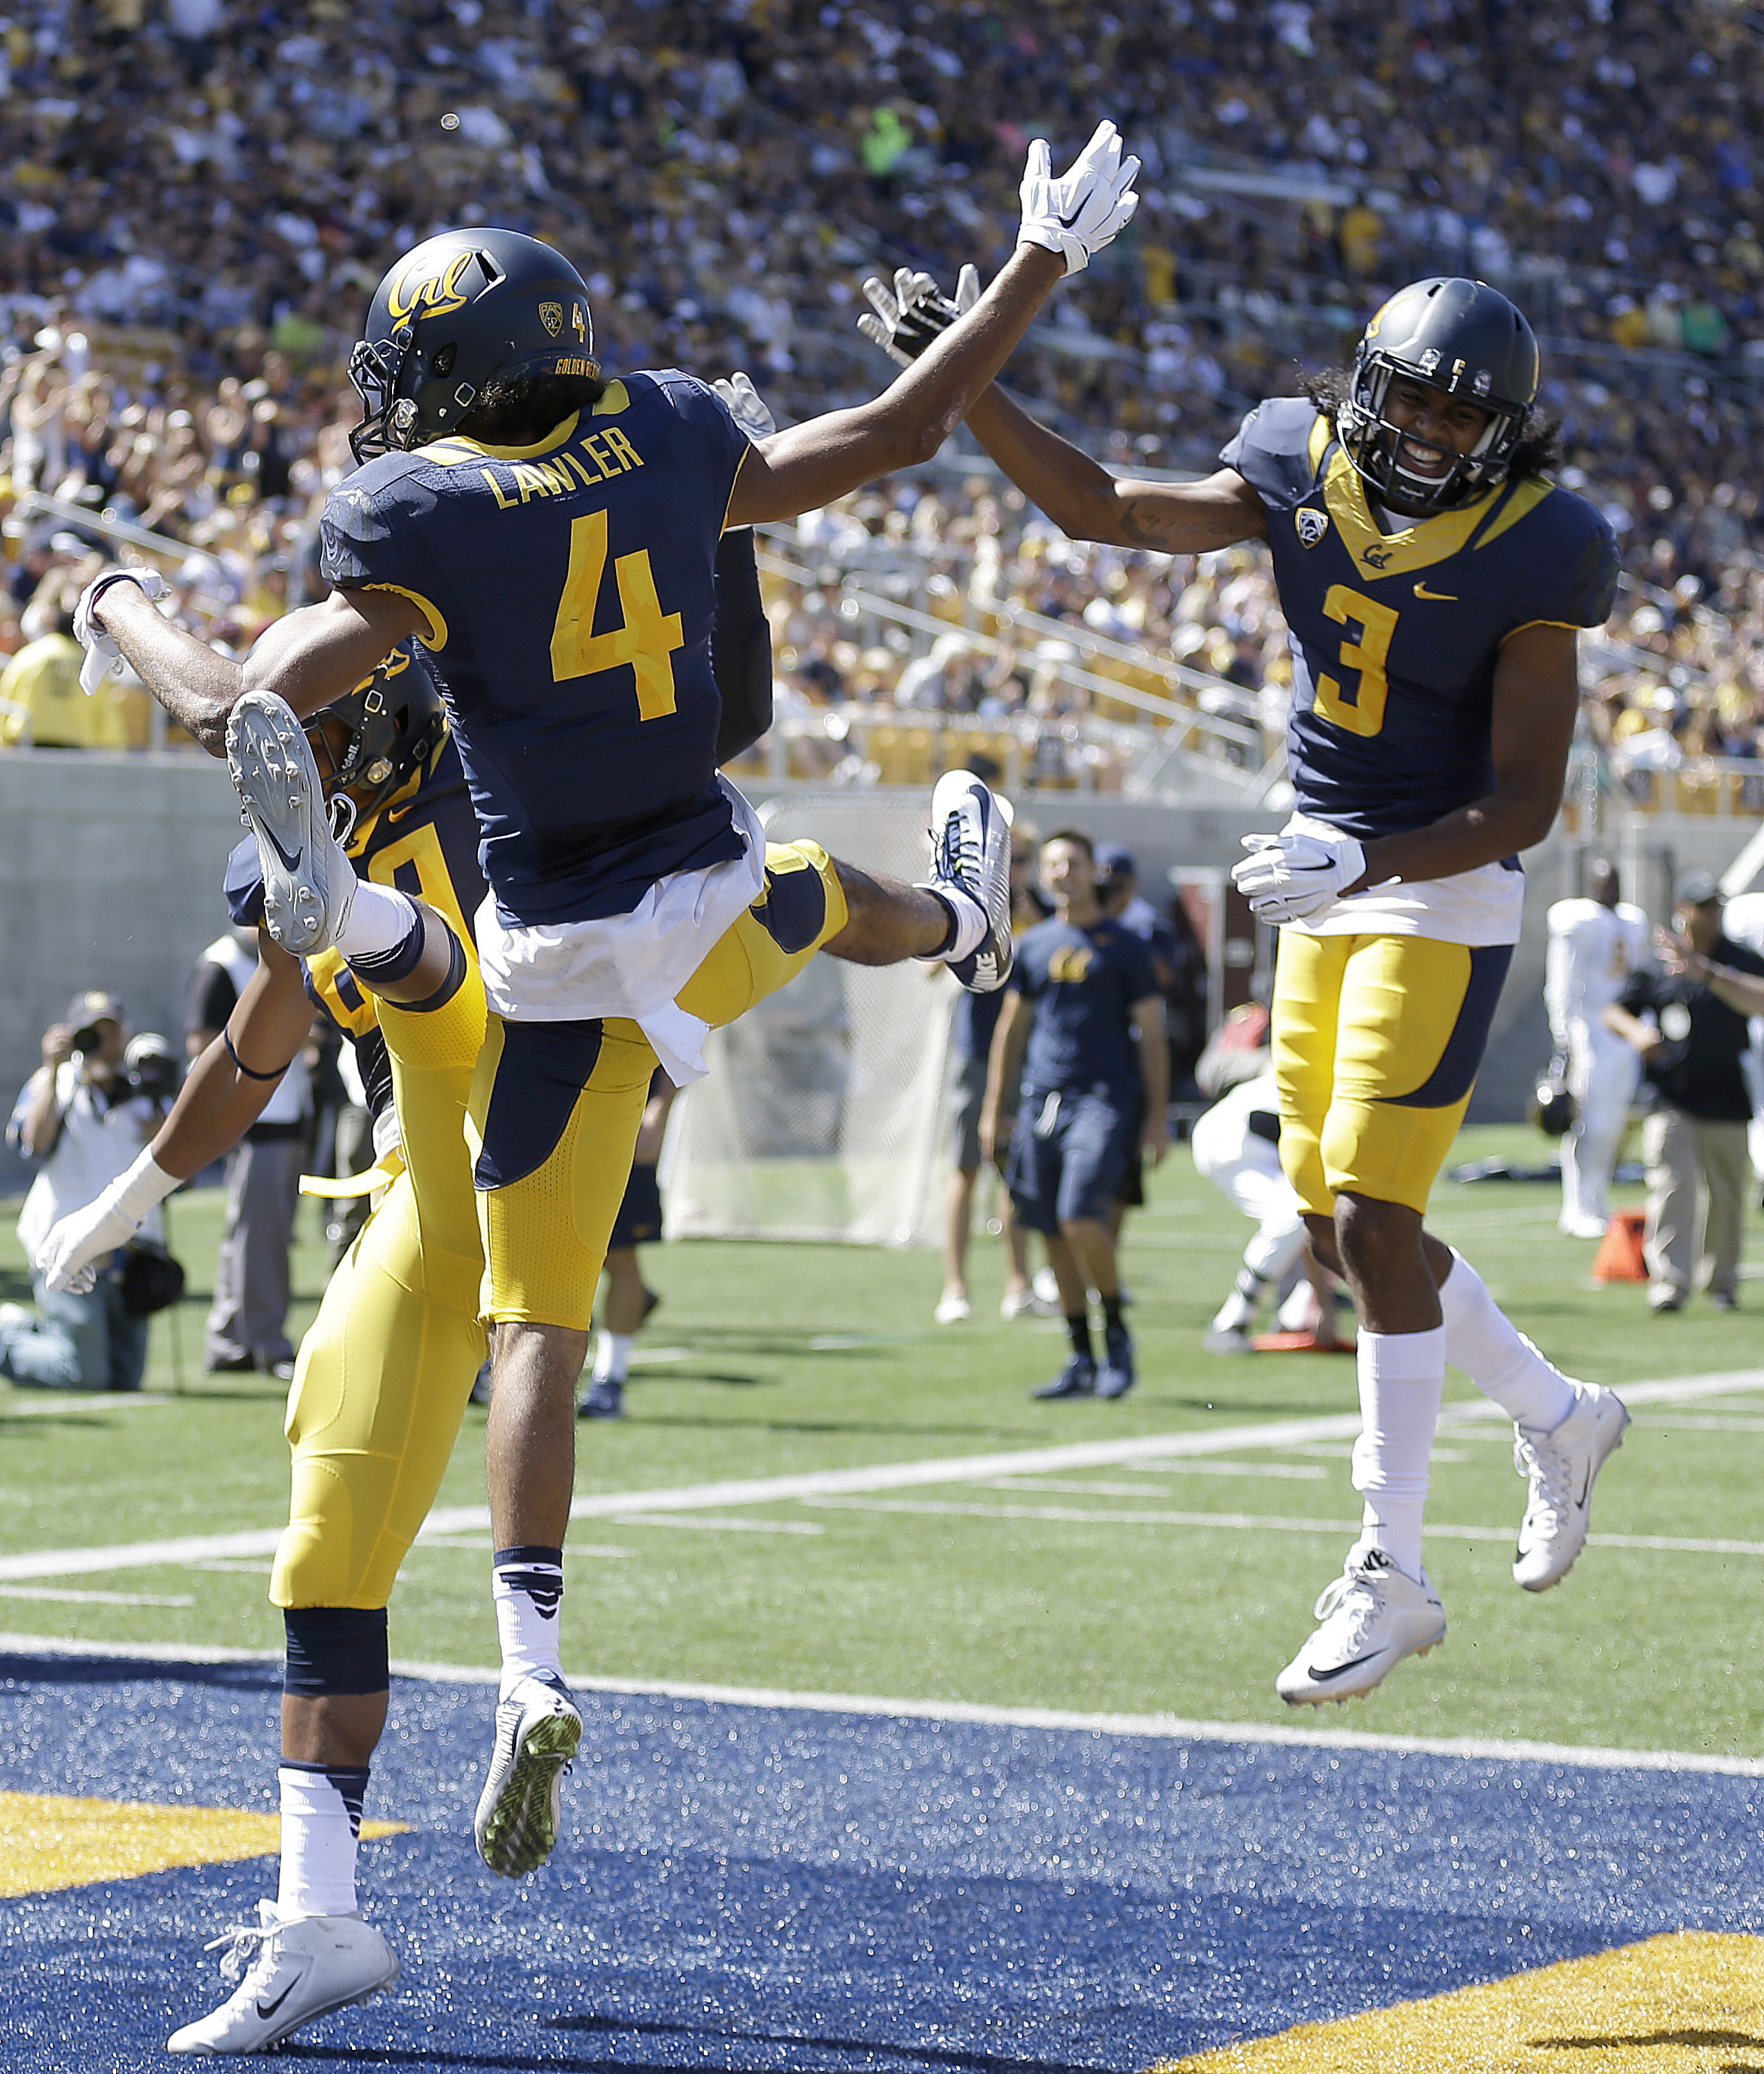 California's Kenny Lawler (4) celebrates with Maurice Harris (3) after scoring against Grambling State during the first half of an NCAA college football game Saturday, Sept. 5, 2015, in Berkeley, Calif. (AP Photo/Ben Margot)